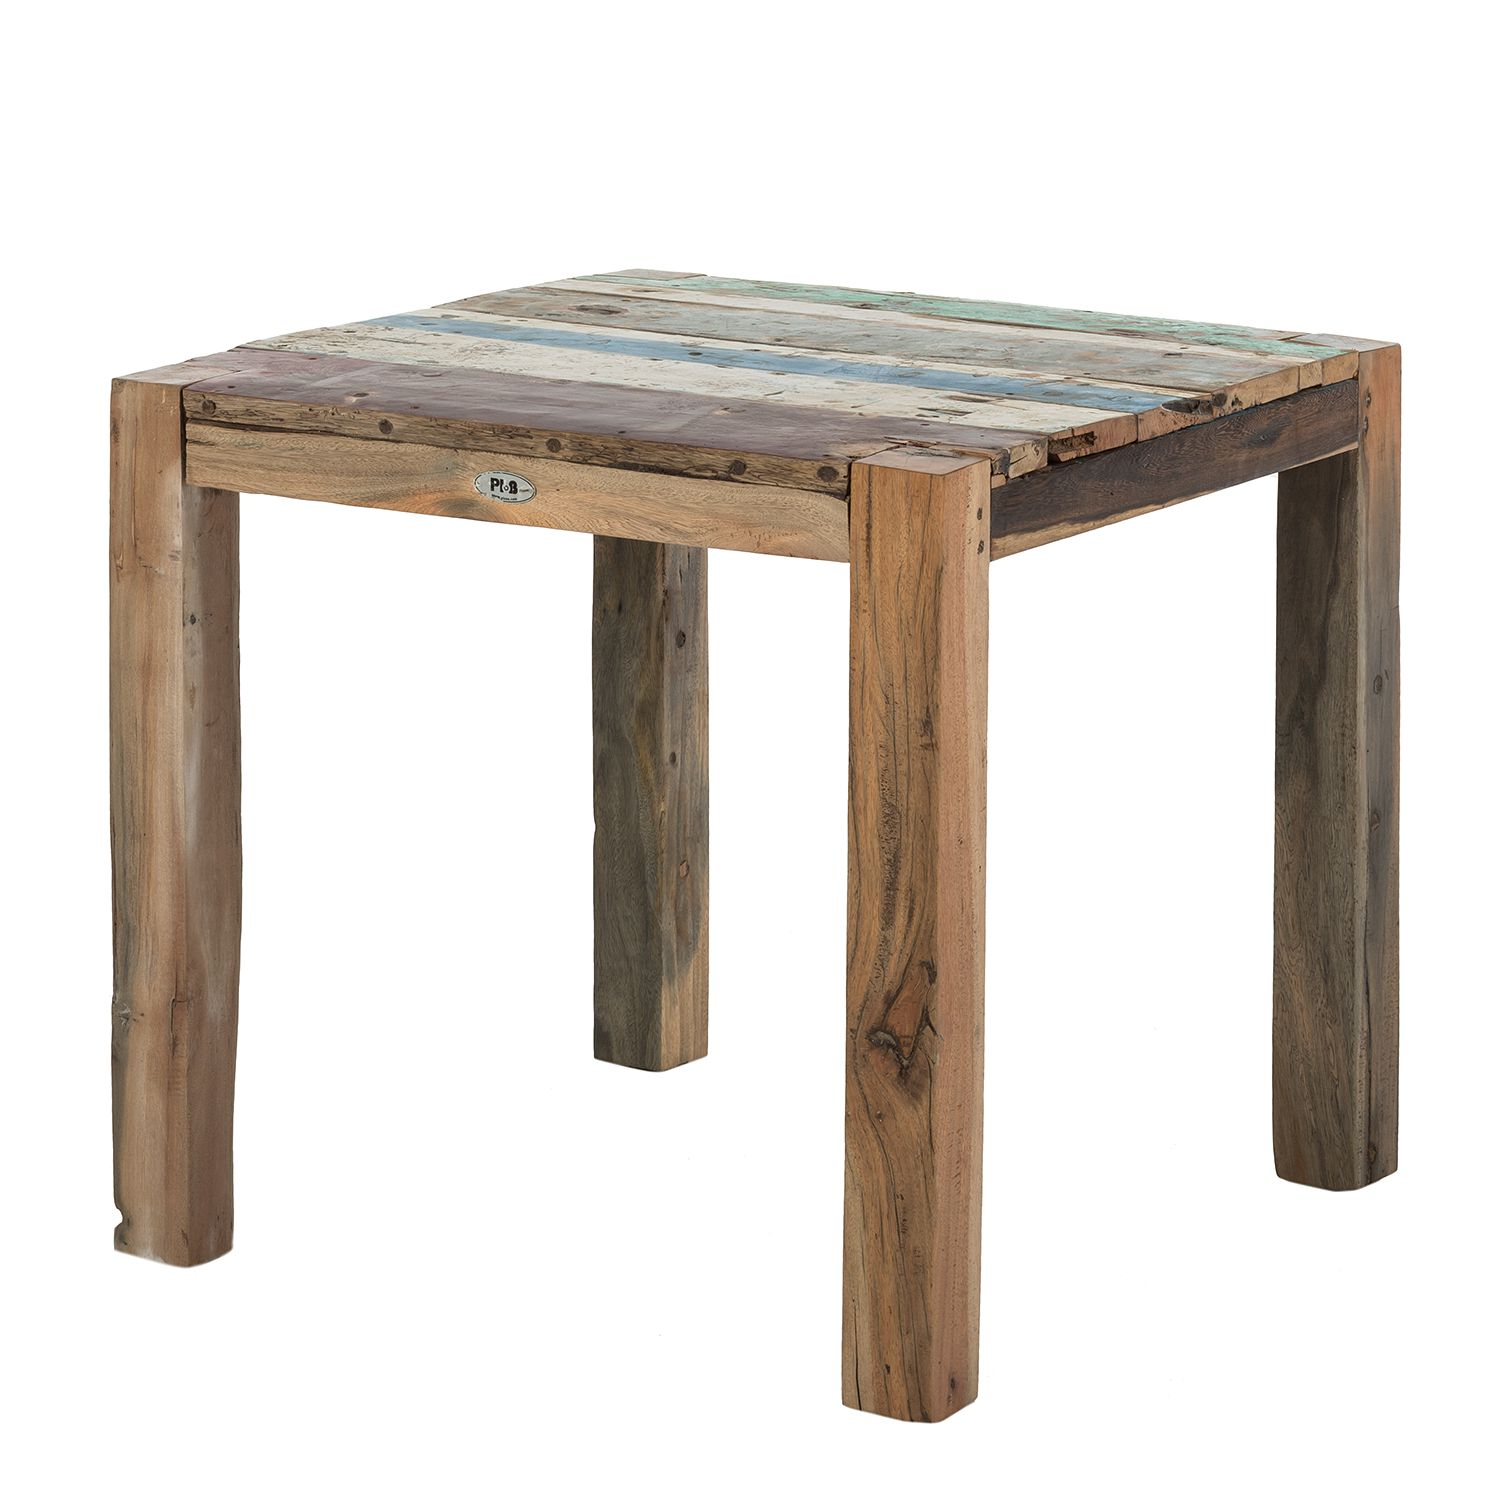 Table de jardin Seaside - Teck massif 80 cm, Ploß